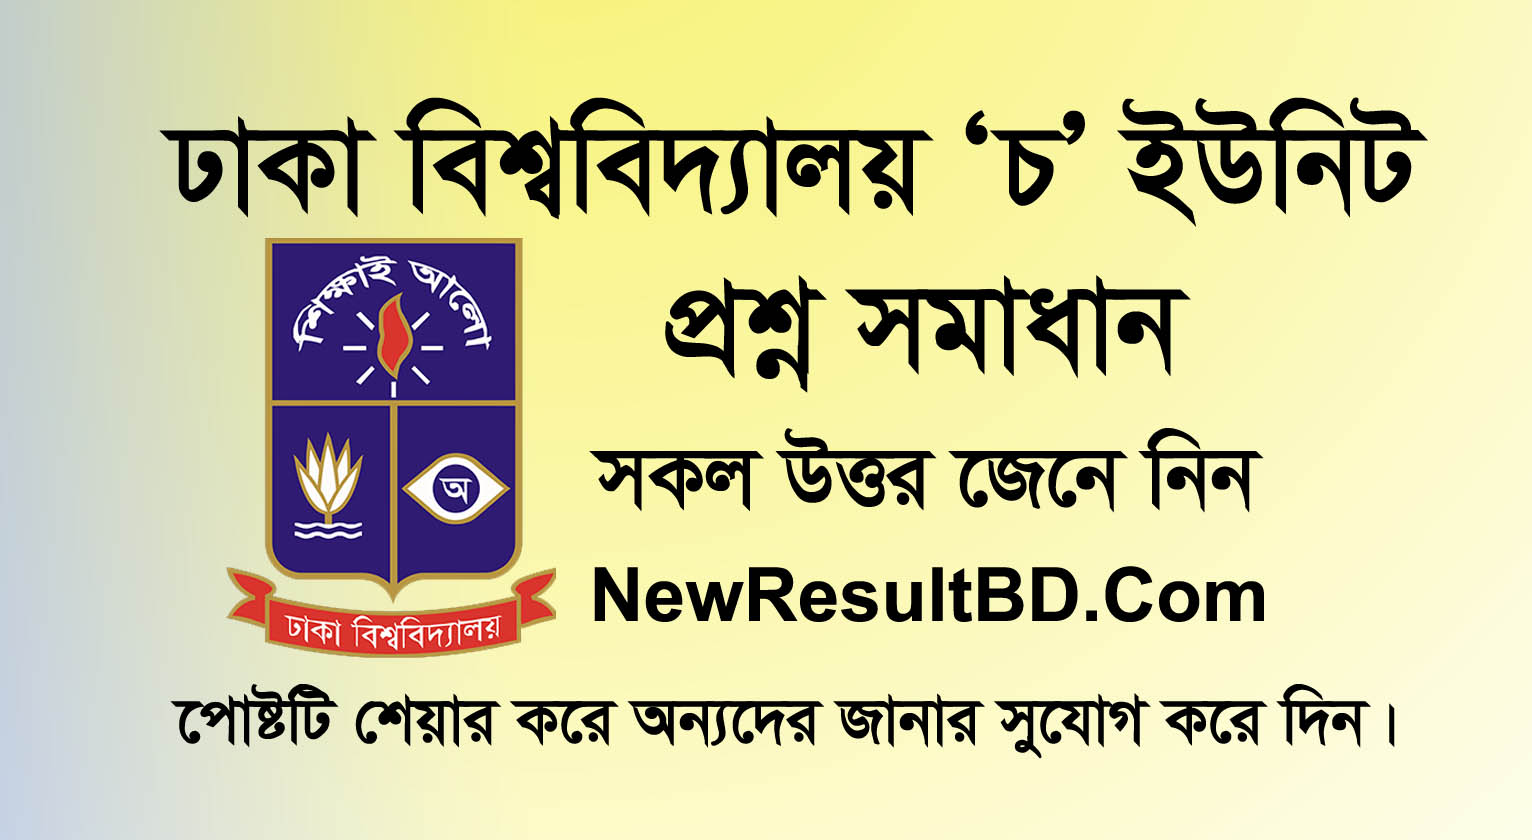 Dhaka University Cha Unit Question Solution 2019, F Unit Solution, ঢাকা বিশ্ববিদ্যালয় চ ইউুনিট সমাধান, DU Fine Arts Question Solve 2019 , DU ca Unit Answers